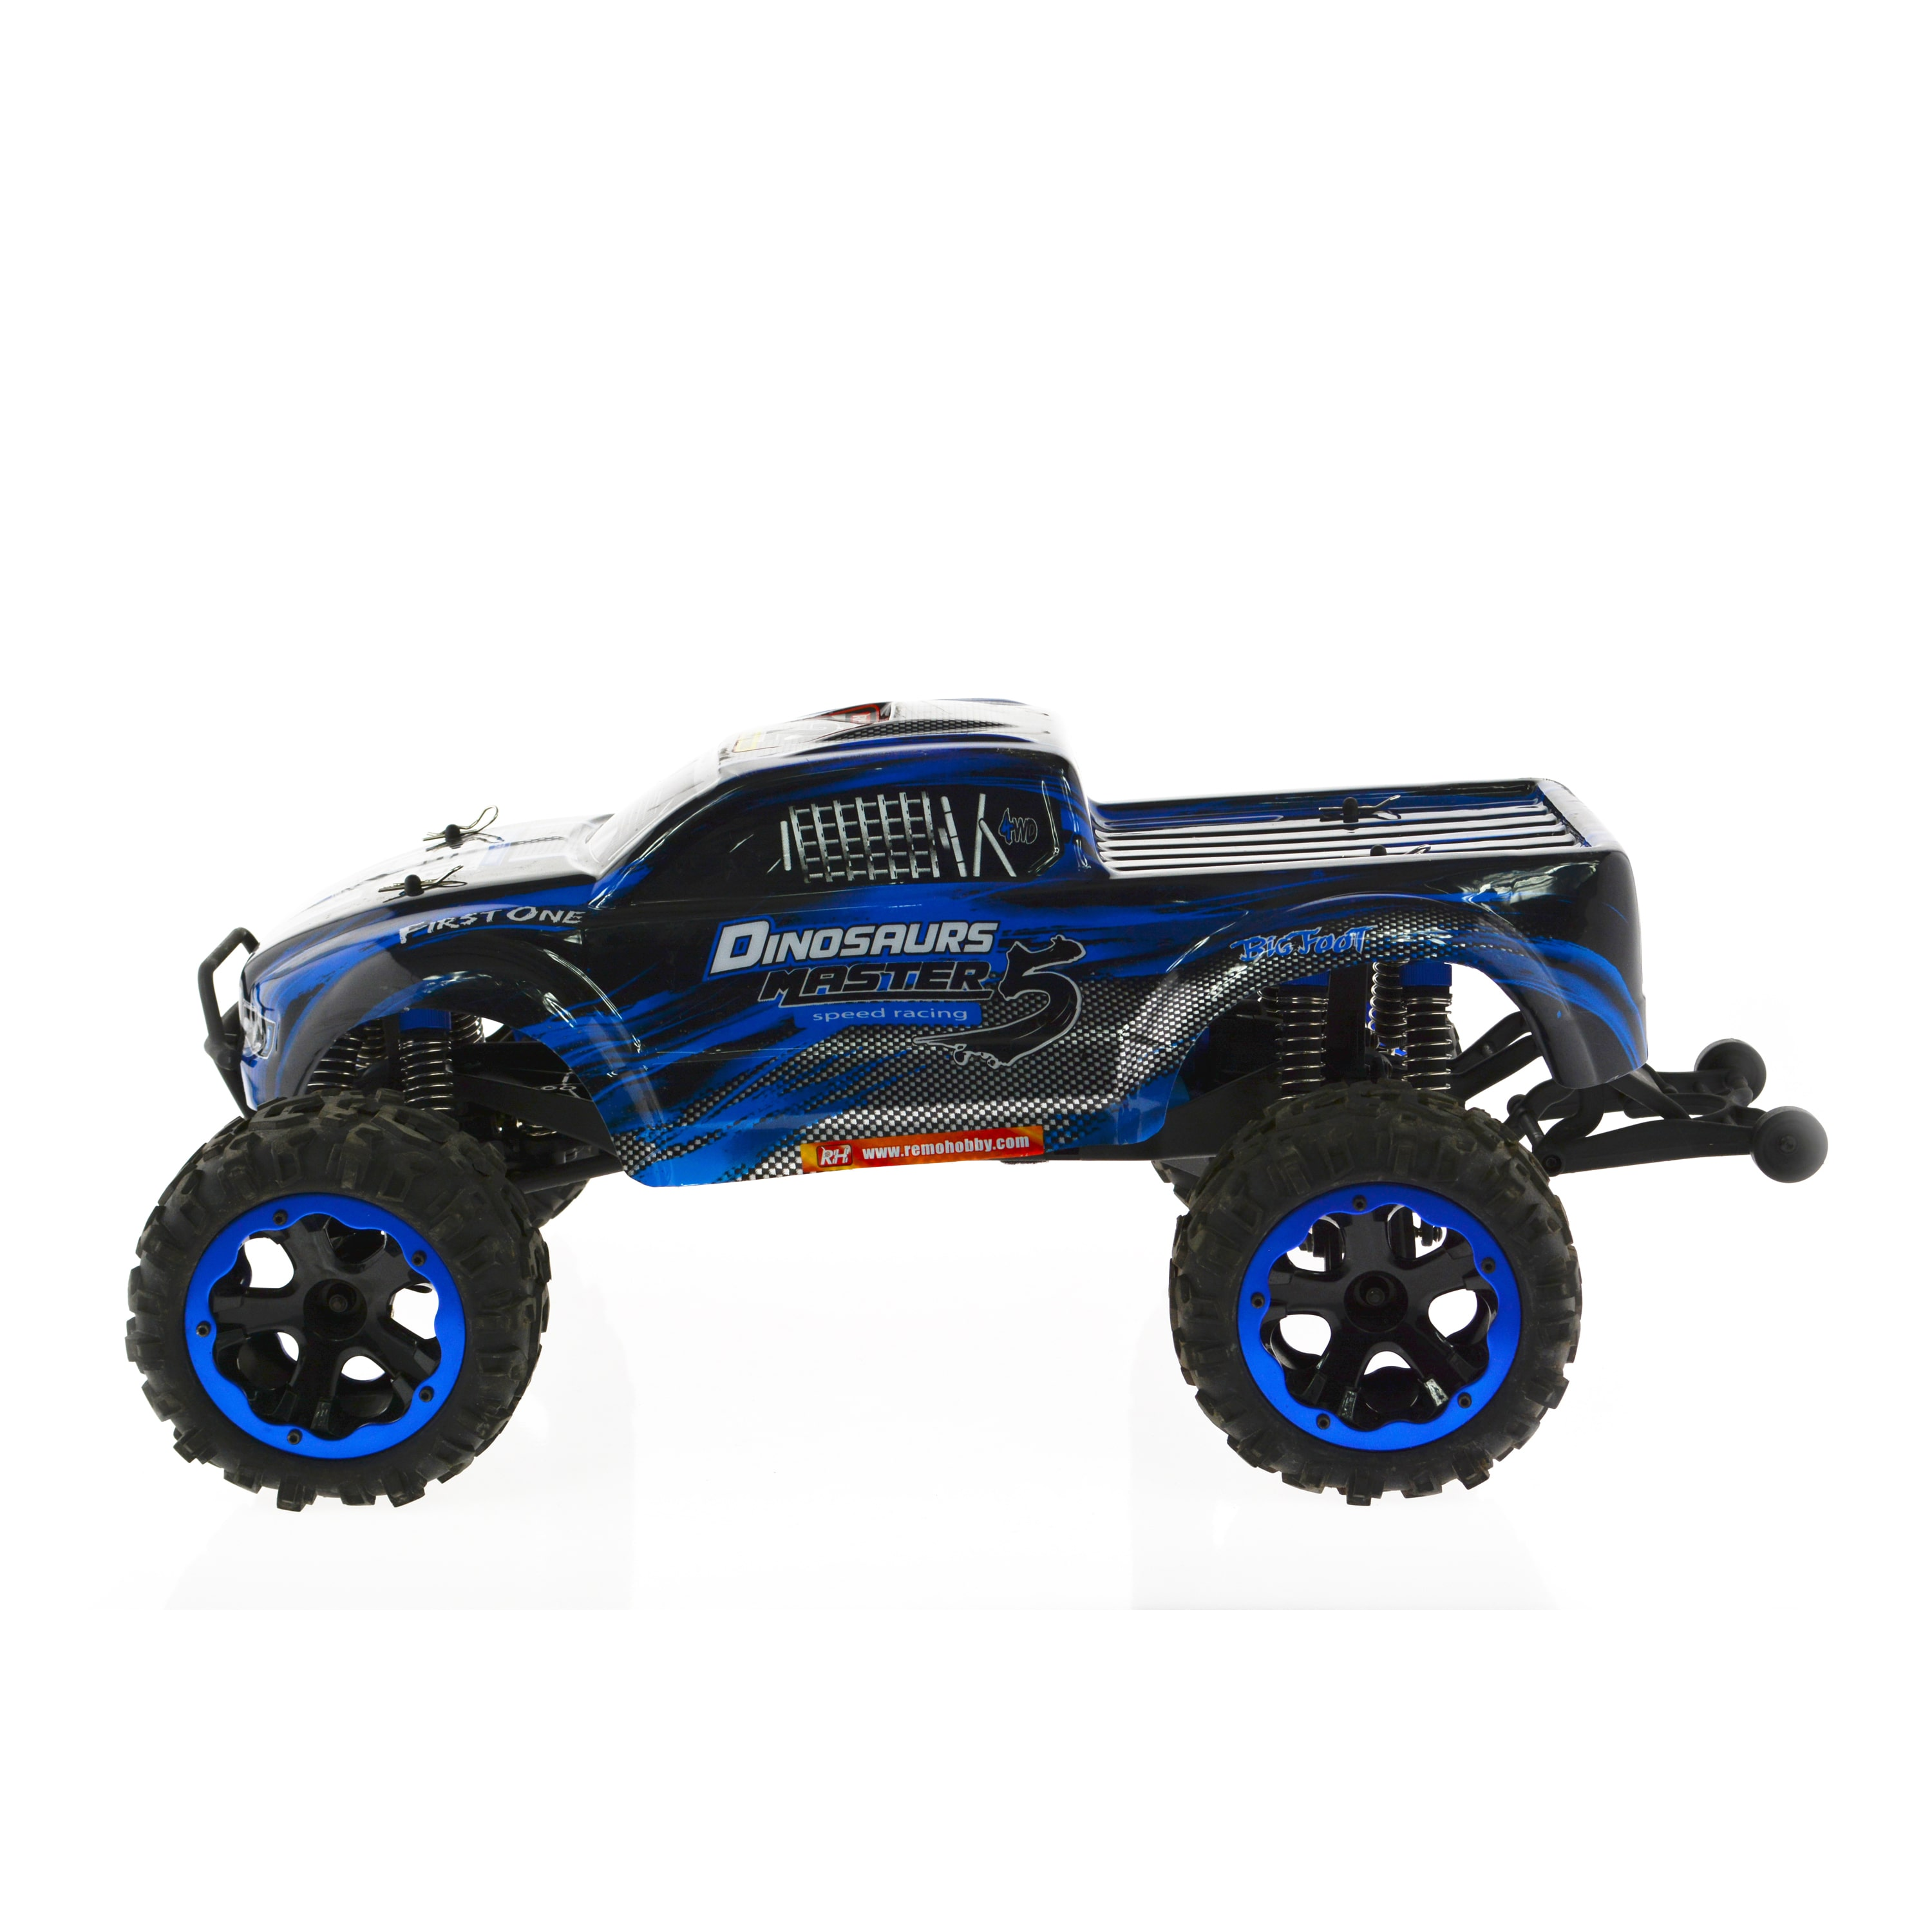 MH 1/8 Scale Electric 4WD 2.4G RC Off-Road Dinosaurs Brus...